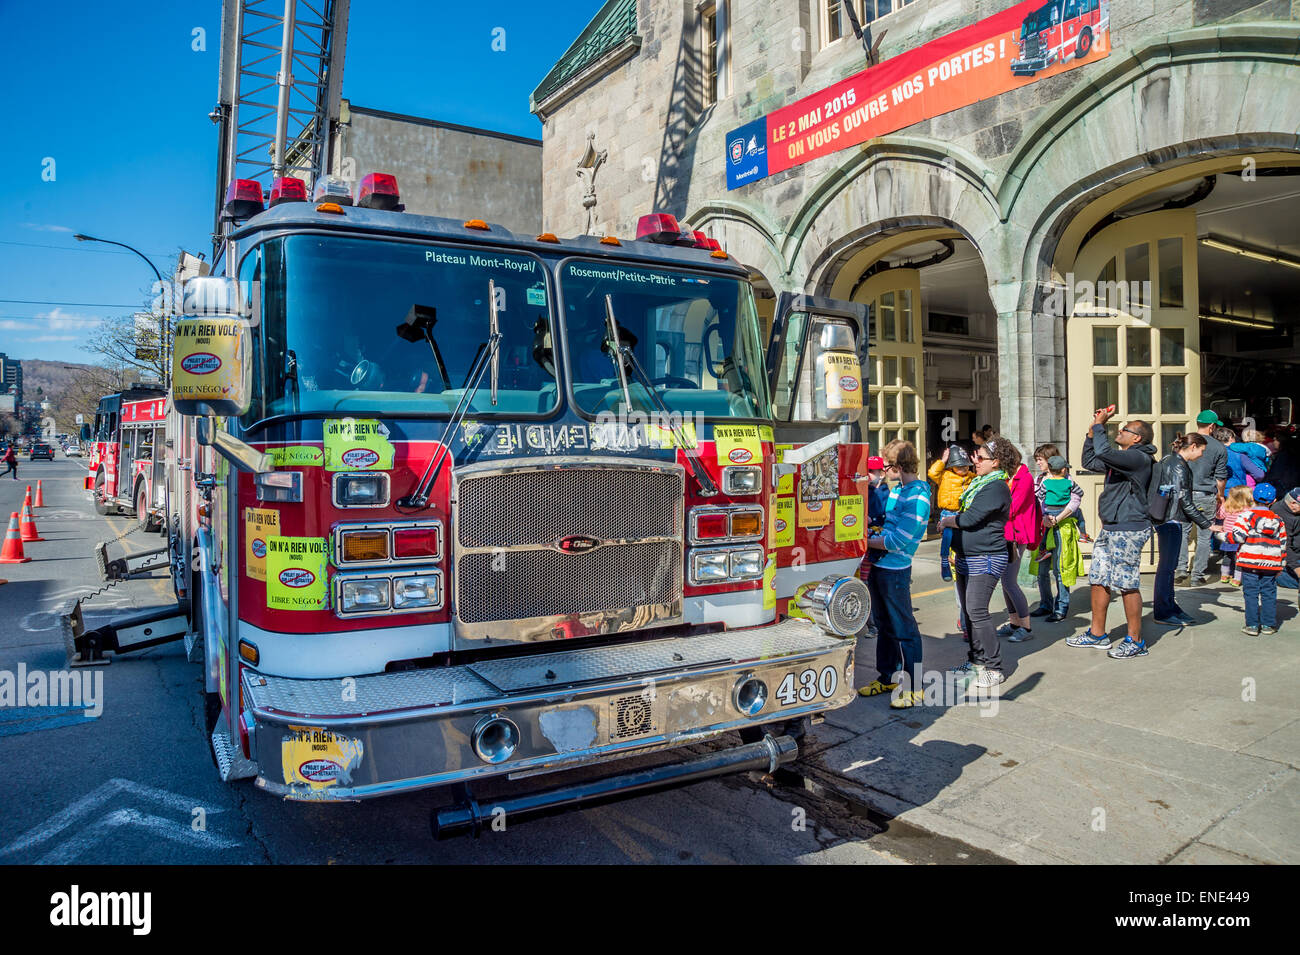 Montreal, May 2nd 2015. Fire department (SIM) Open house day at Plateau Mont-Royal fire station. - Stock Image